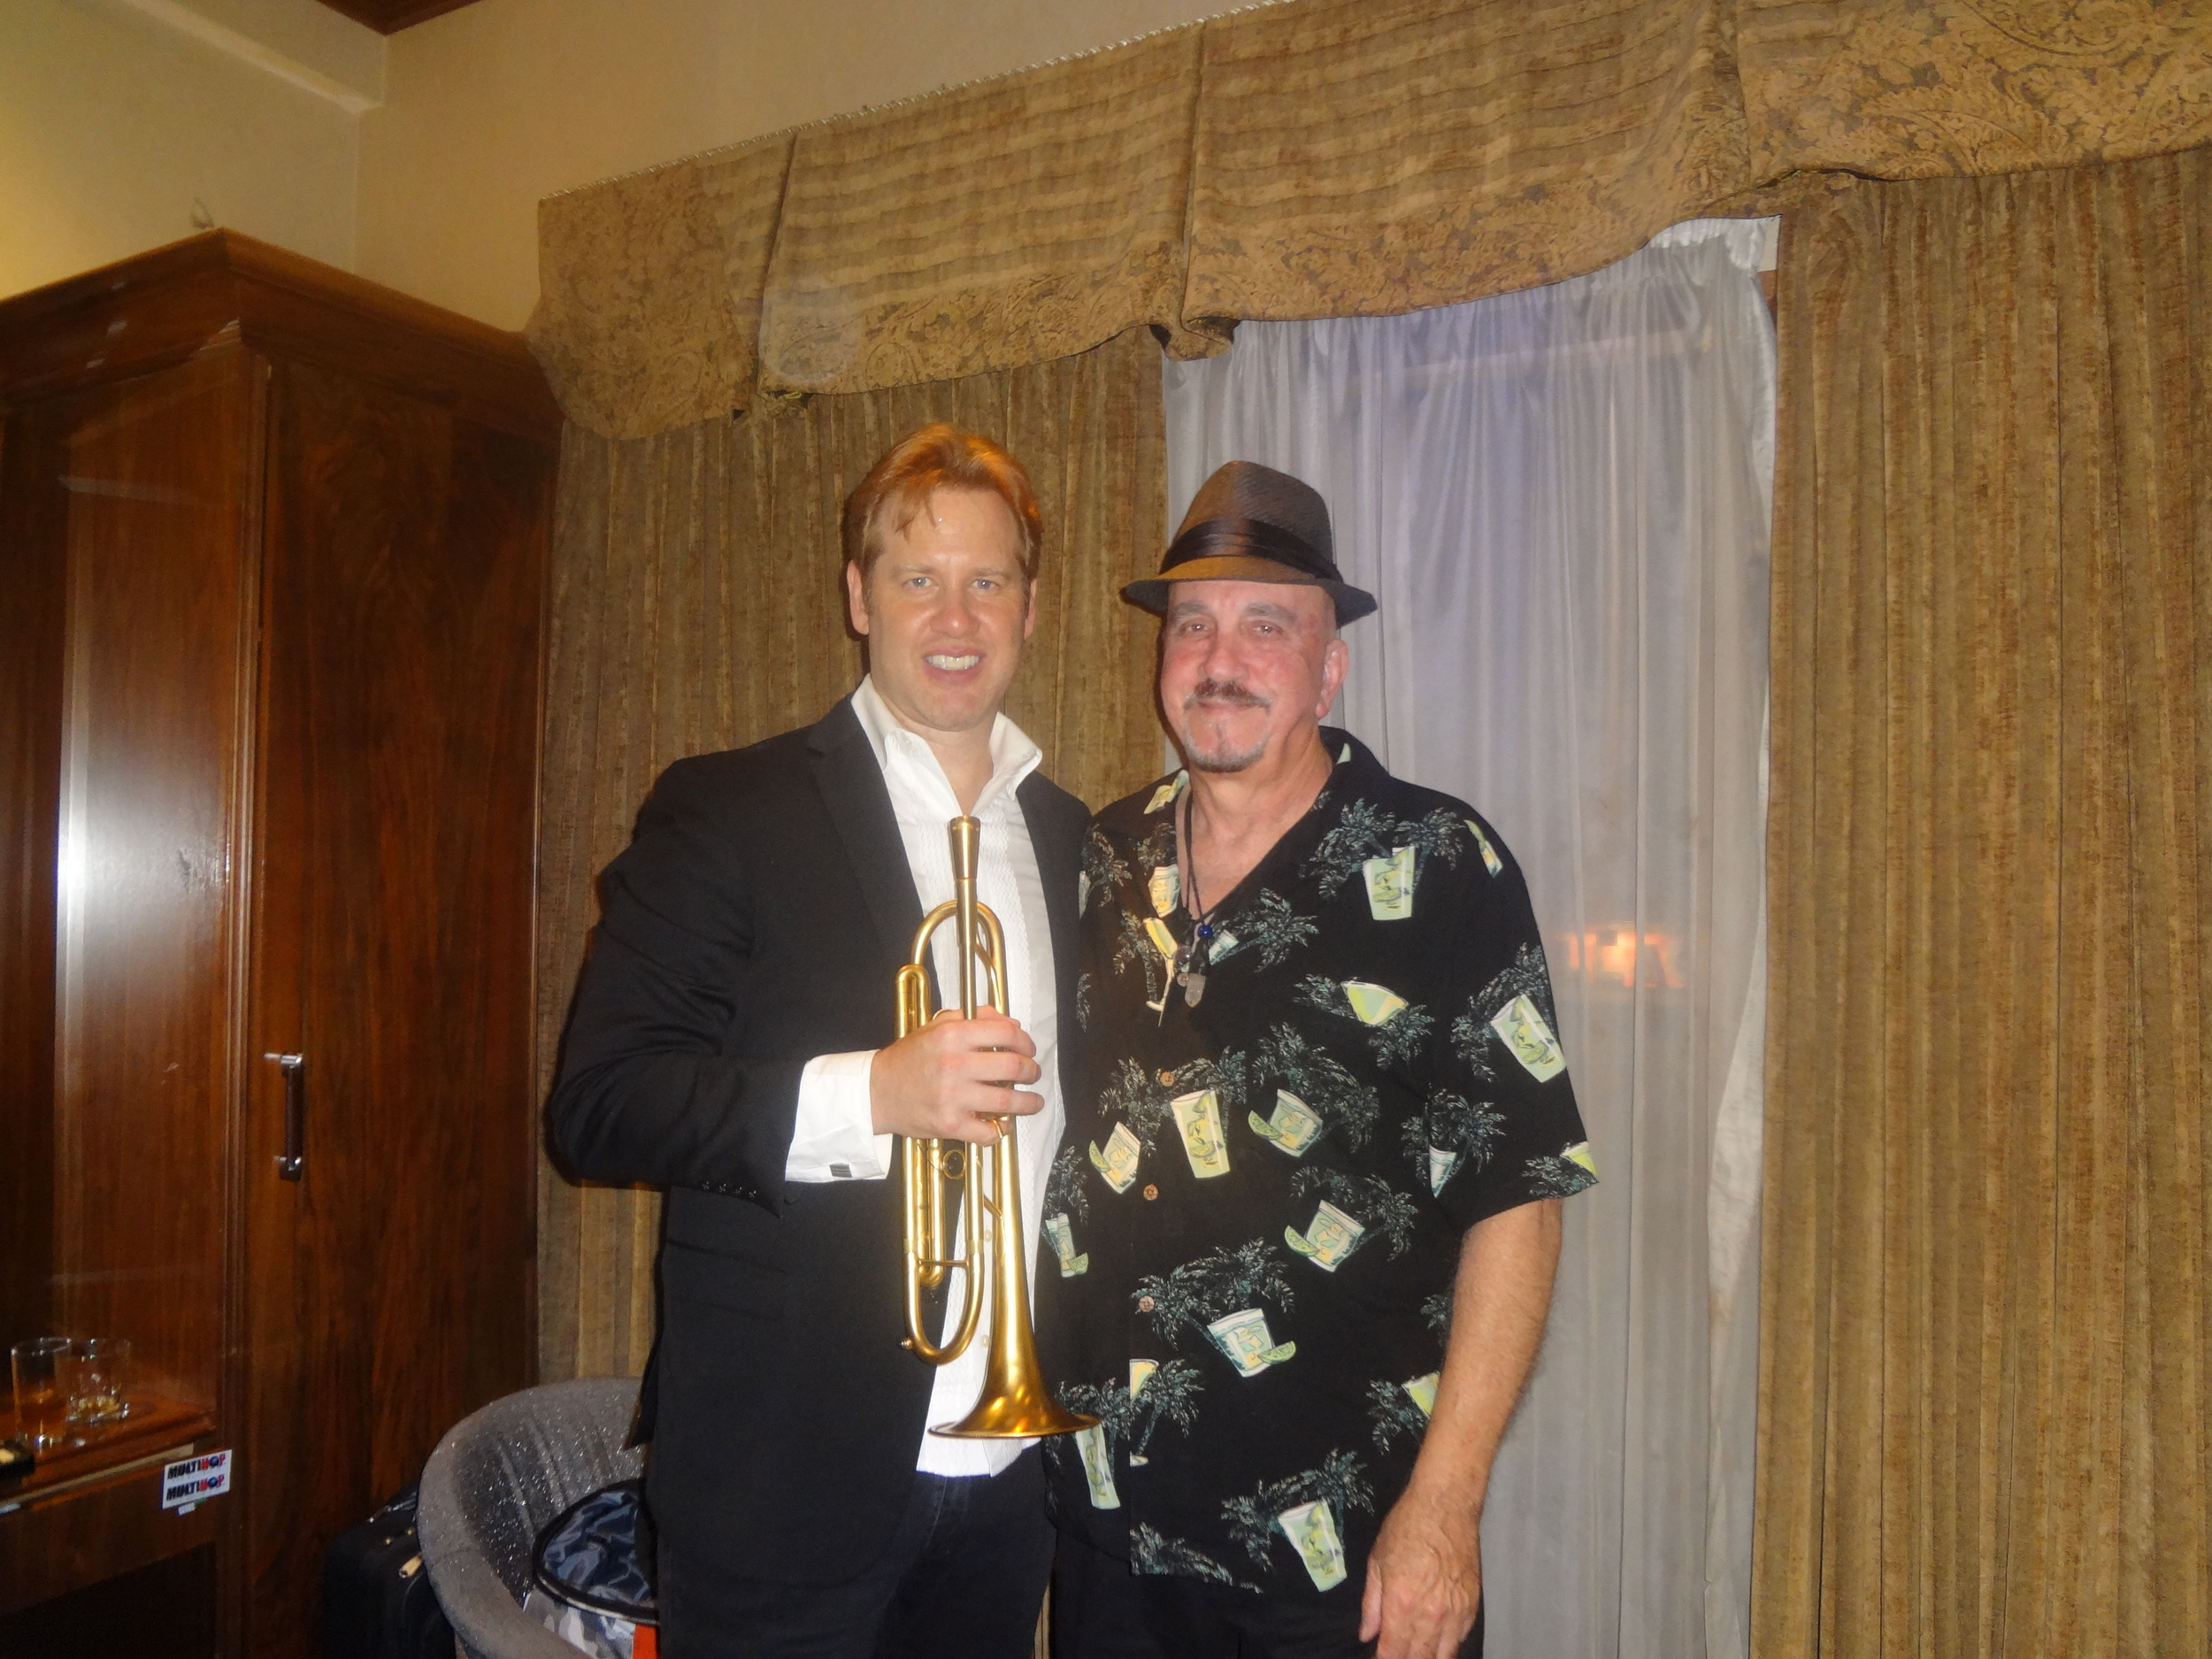 Joe Gransden and Rich Pulin at the Blue Note Jazz Club - New York - July 11, 2016